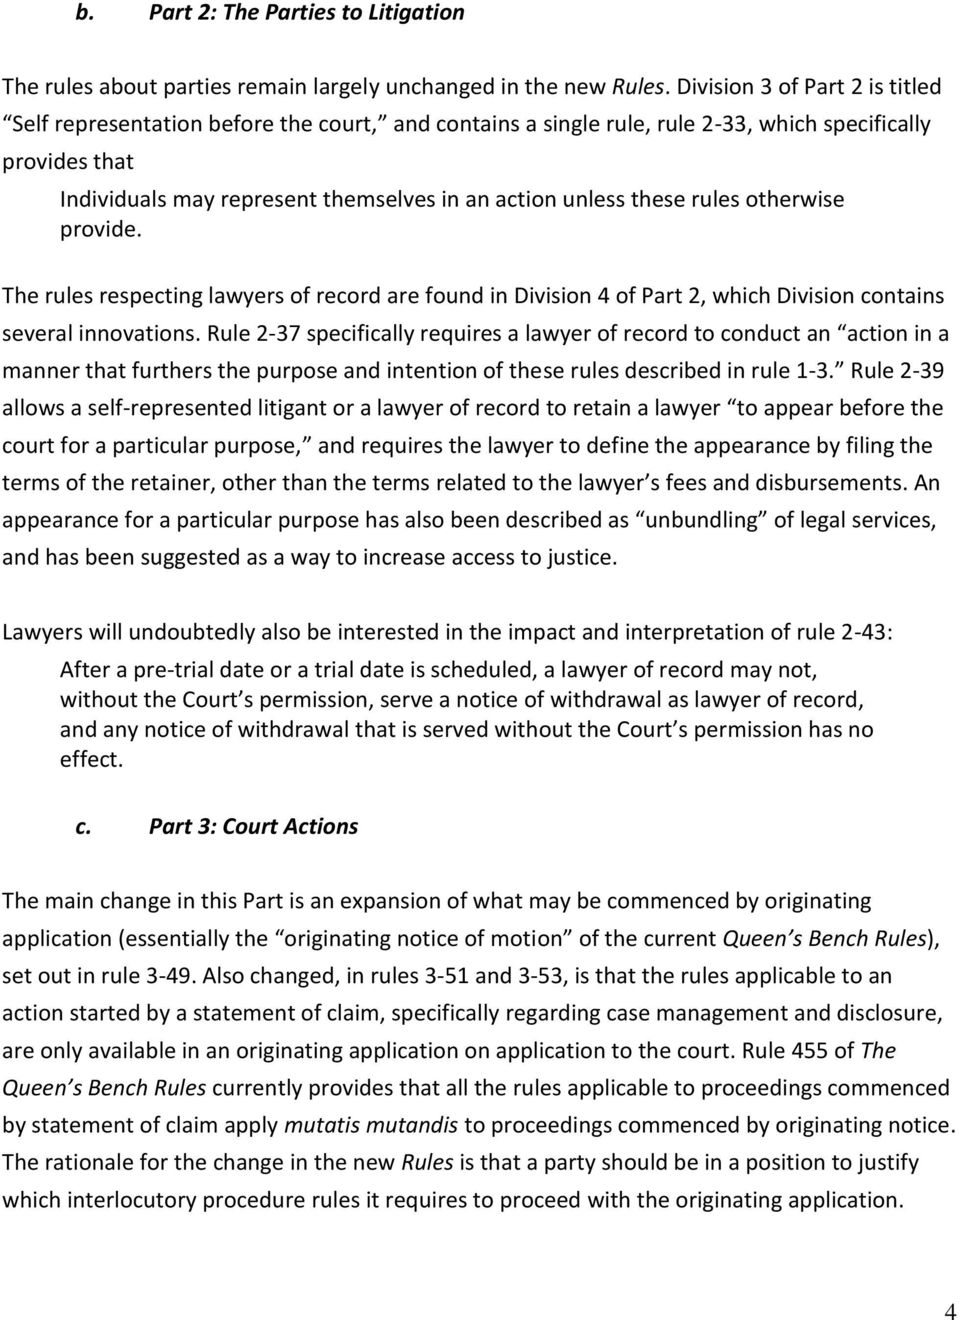 these rules otherwise provide. The rules respecting lawyers of record are found in Division 4 of Part 2, which Division contains several innovations.